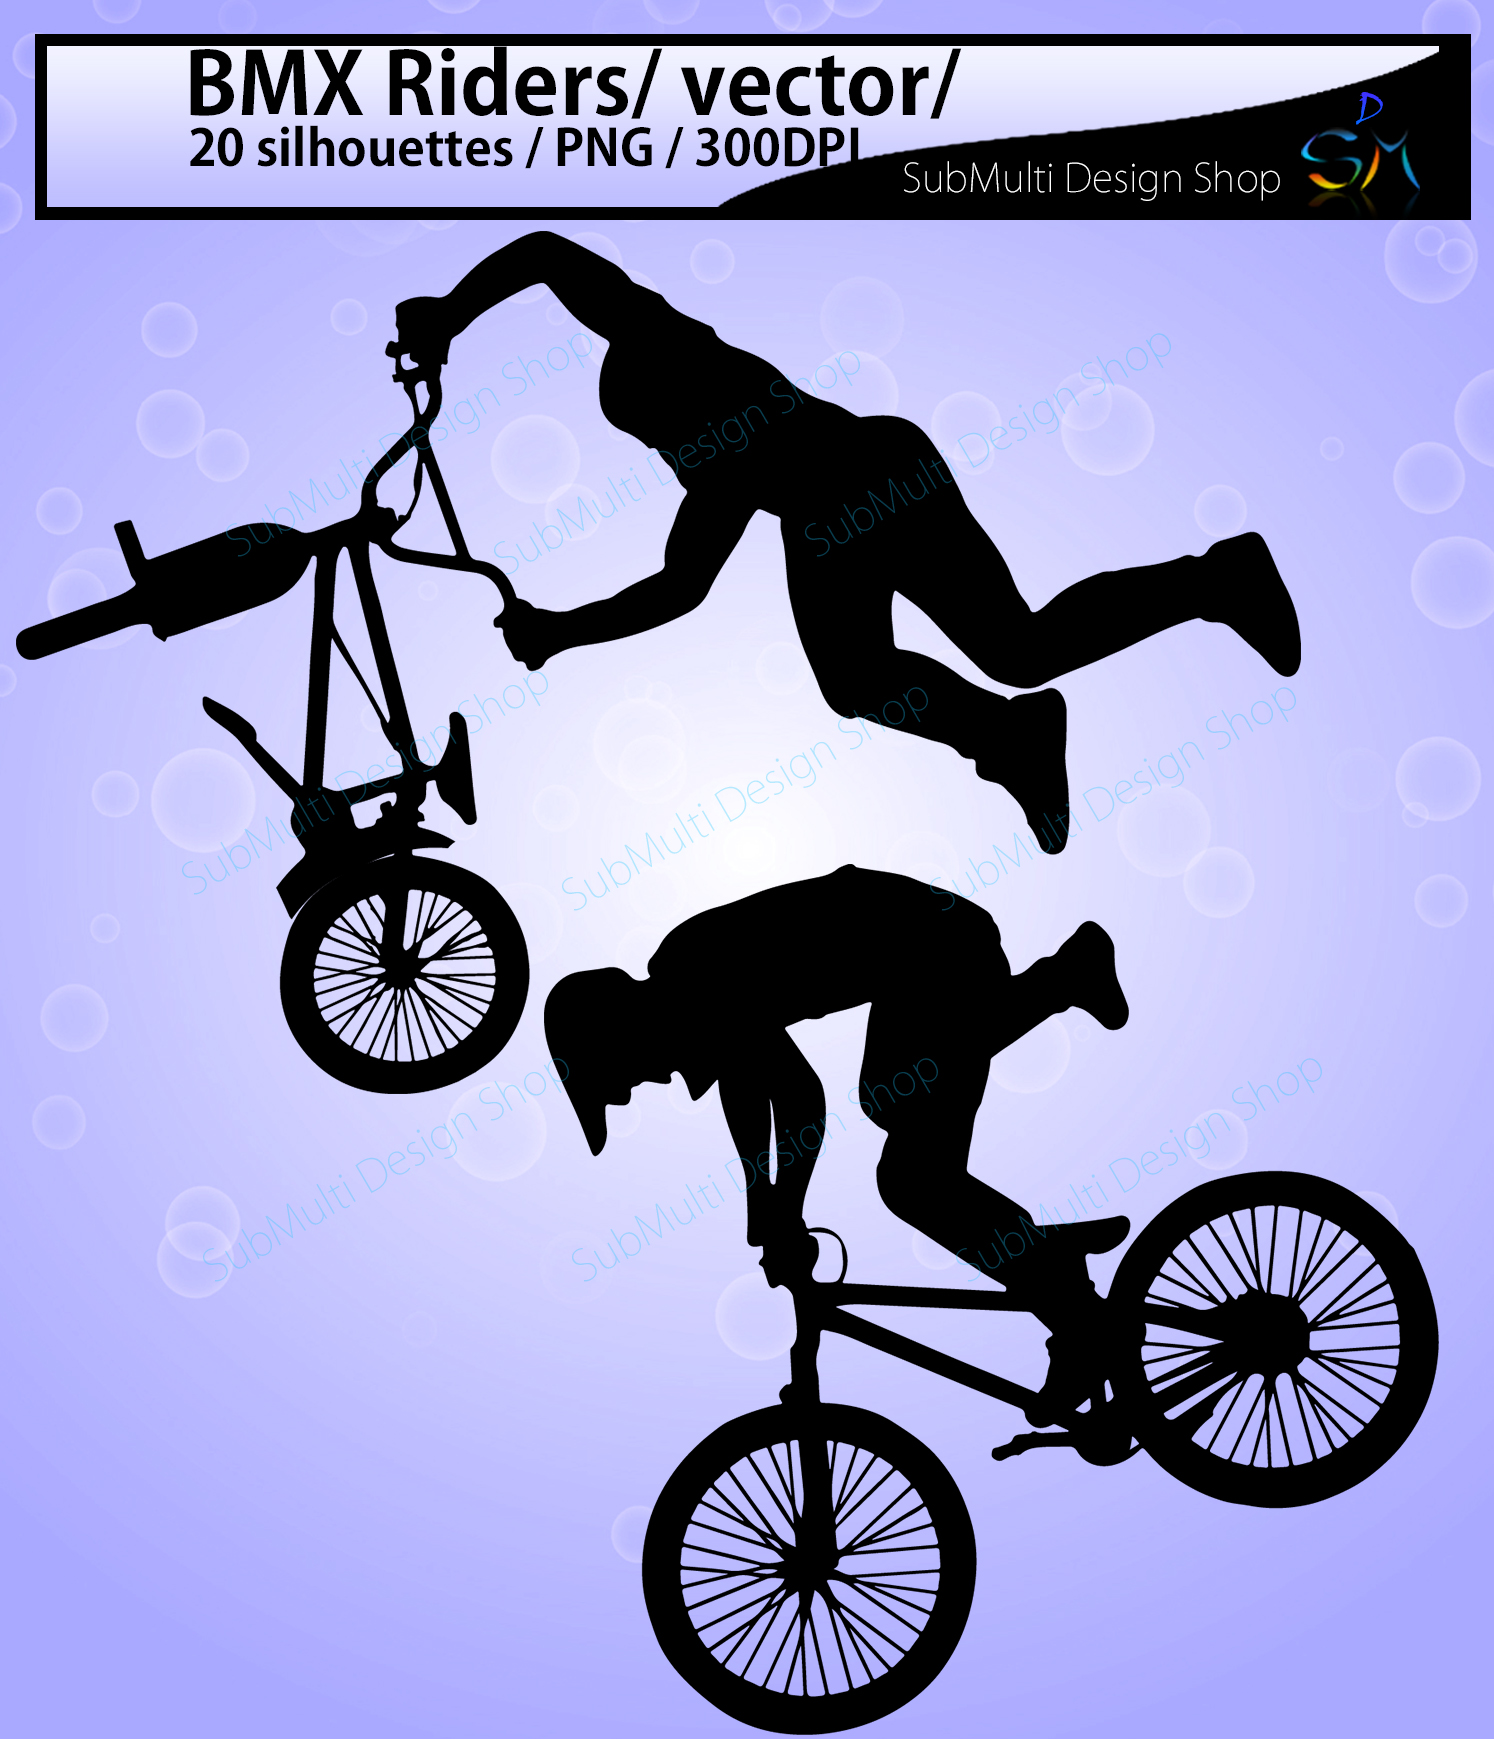 bmx rider silhouette / BMX Rider svg / bmx riders / bmx cycle / bmx rider cliparts / bmx rider vector / bike ride / SVG / EPS / Png / DXf example image 2